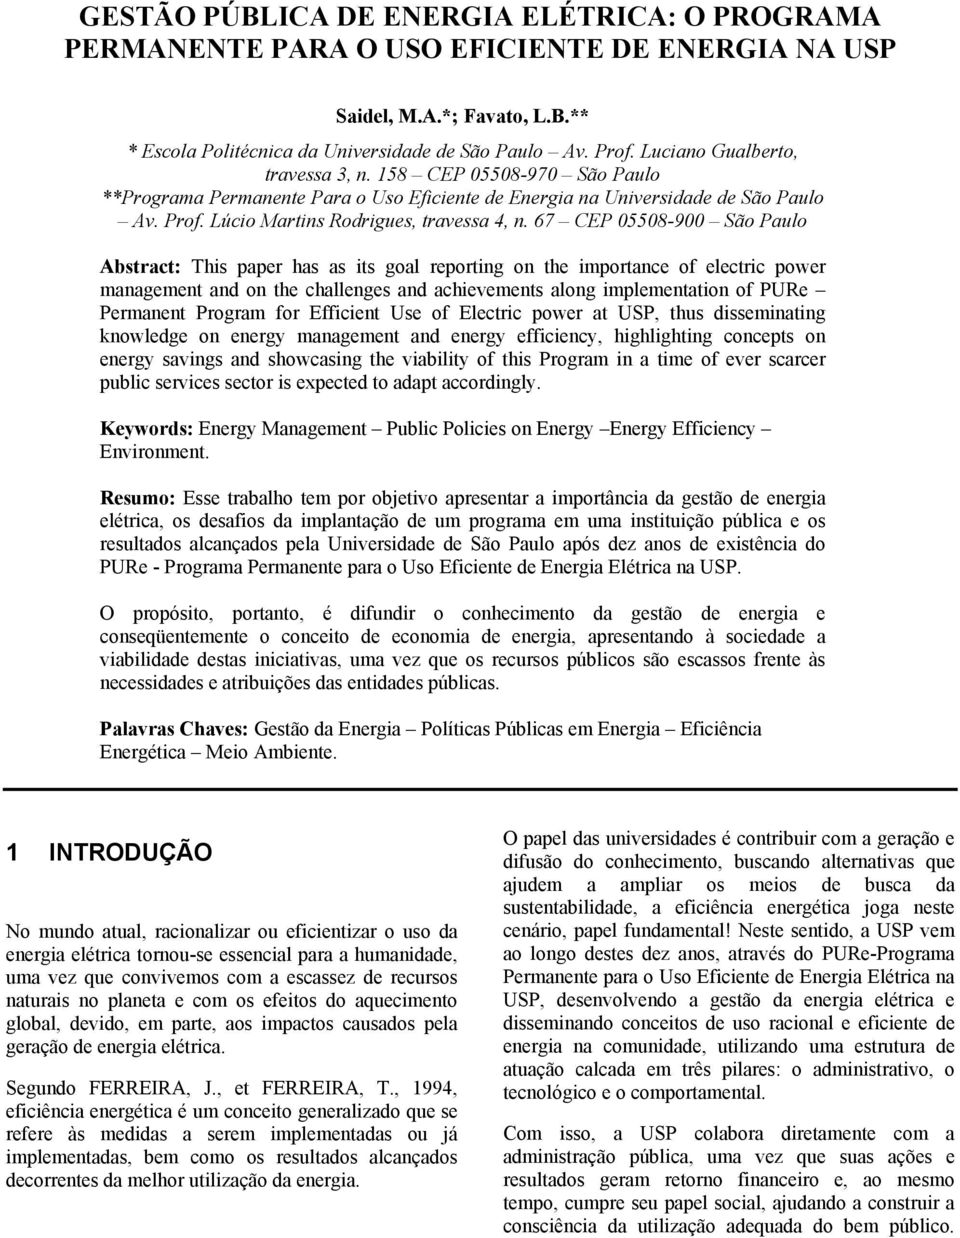 67 CEP 05508-900 São Paulo Abstract: This paper has as its goal reporting on the importance of electric power management and on the challenges and achievements along implementation of PURe Permanent